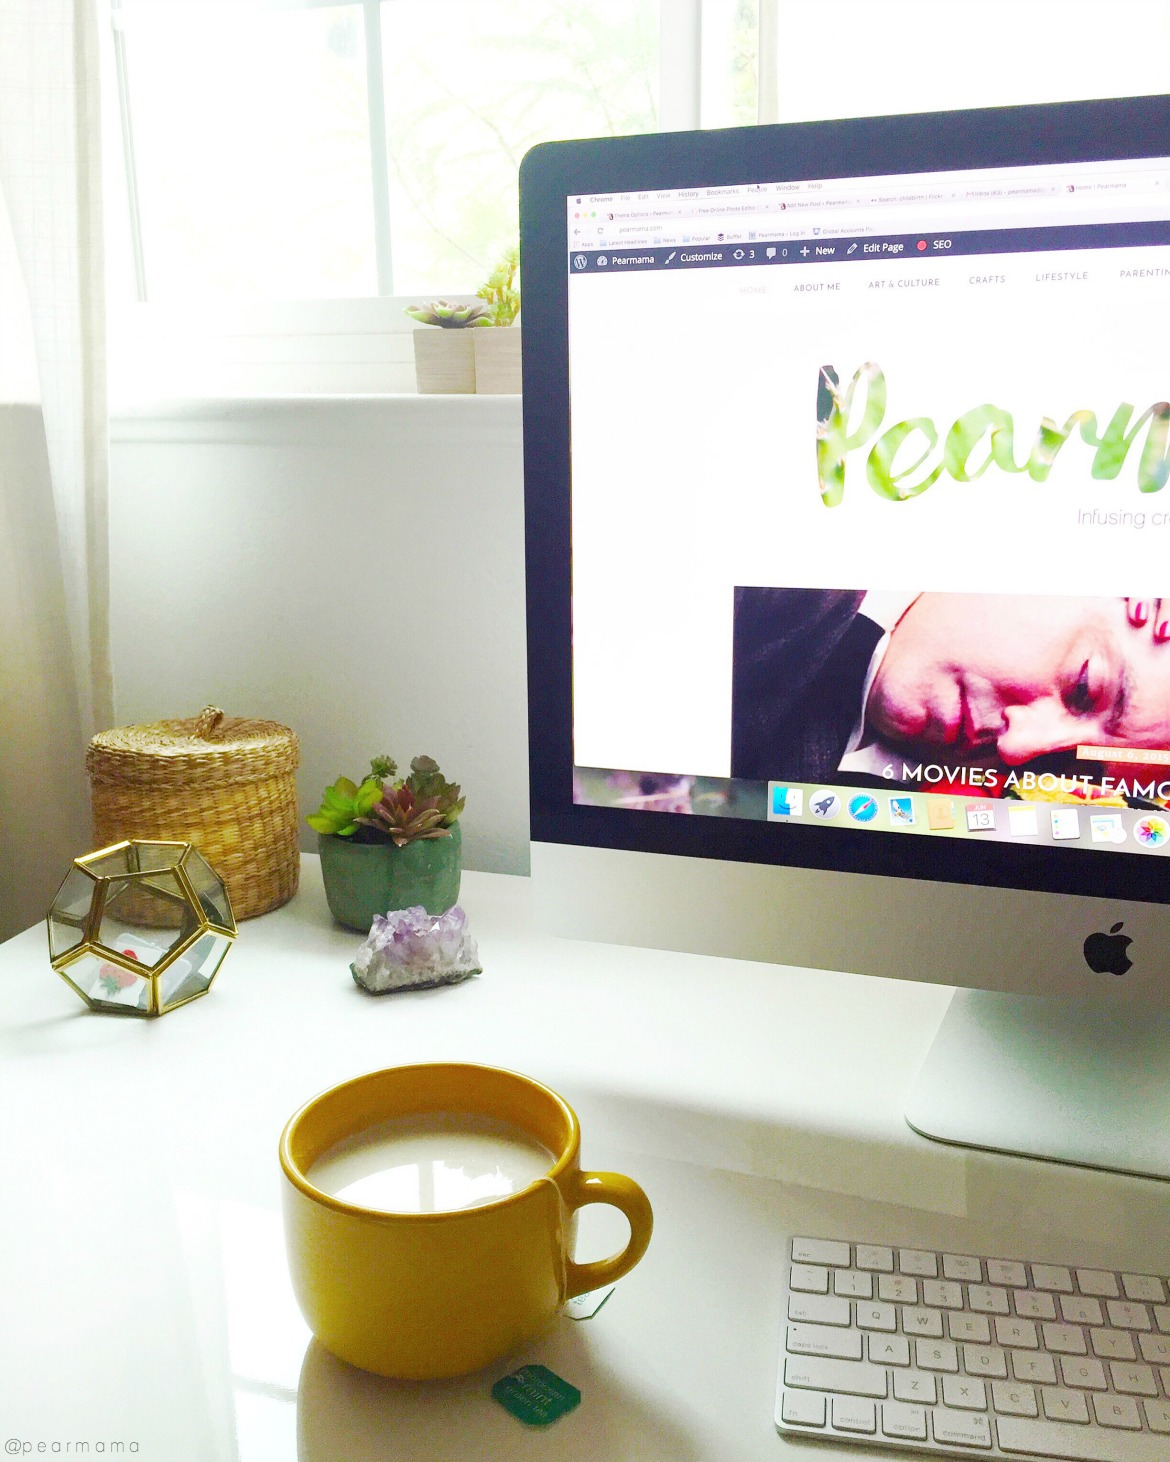 Blogging: Why I won't work for free anymore